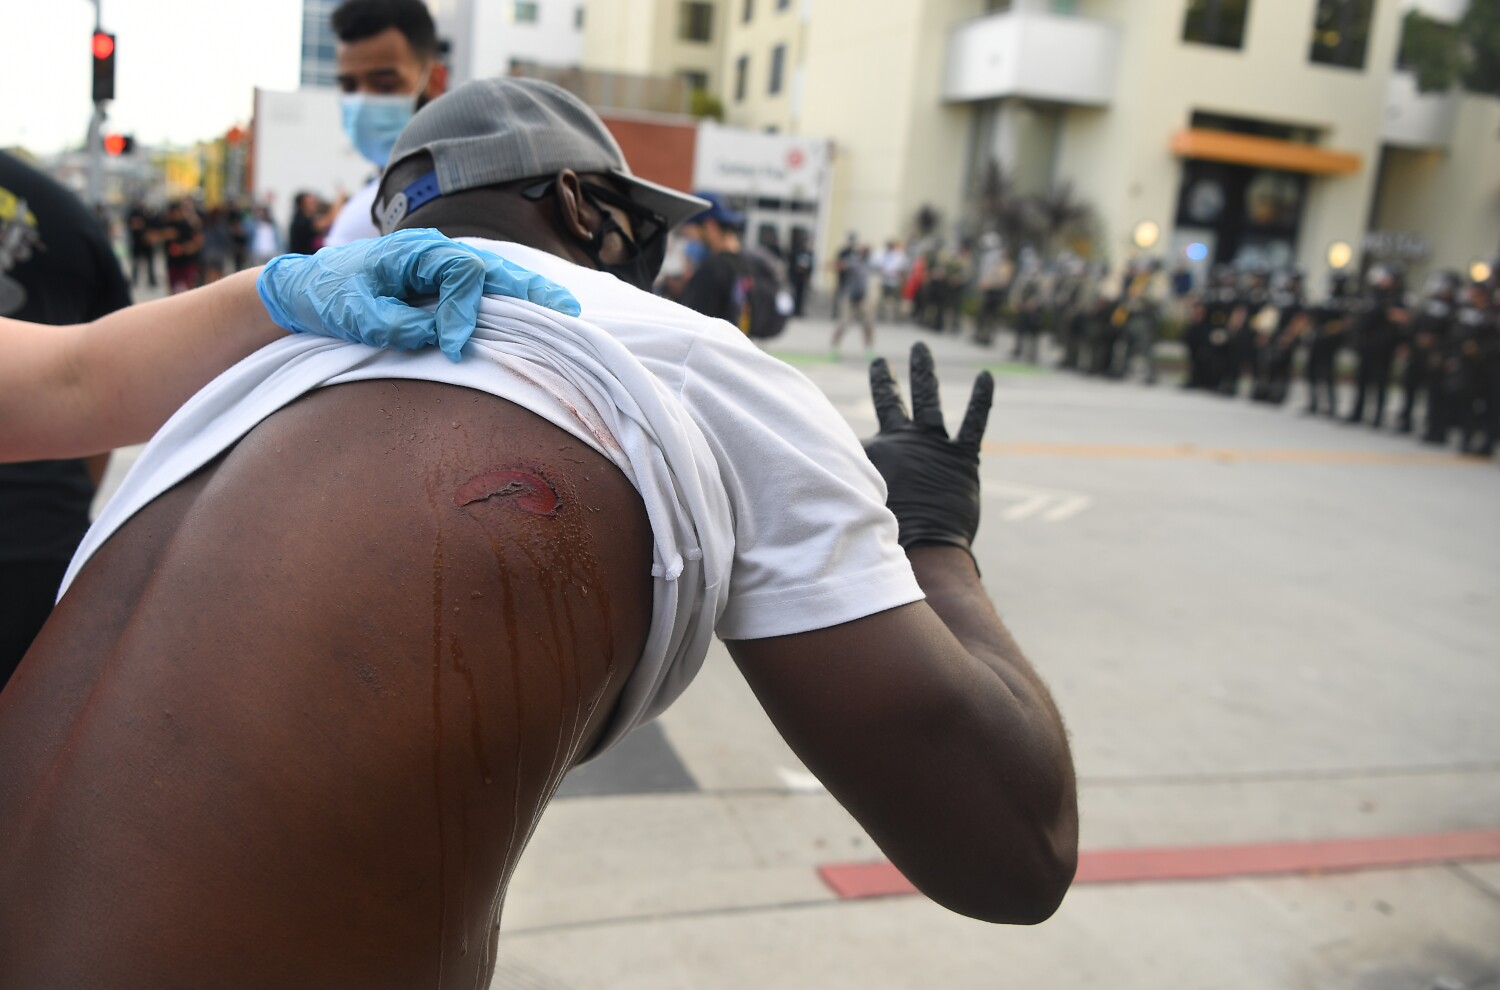 By firing rubber bullets at protesters, police risk killing, blinding or maiming...